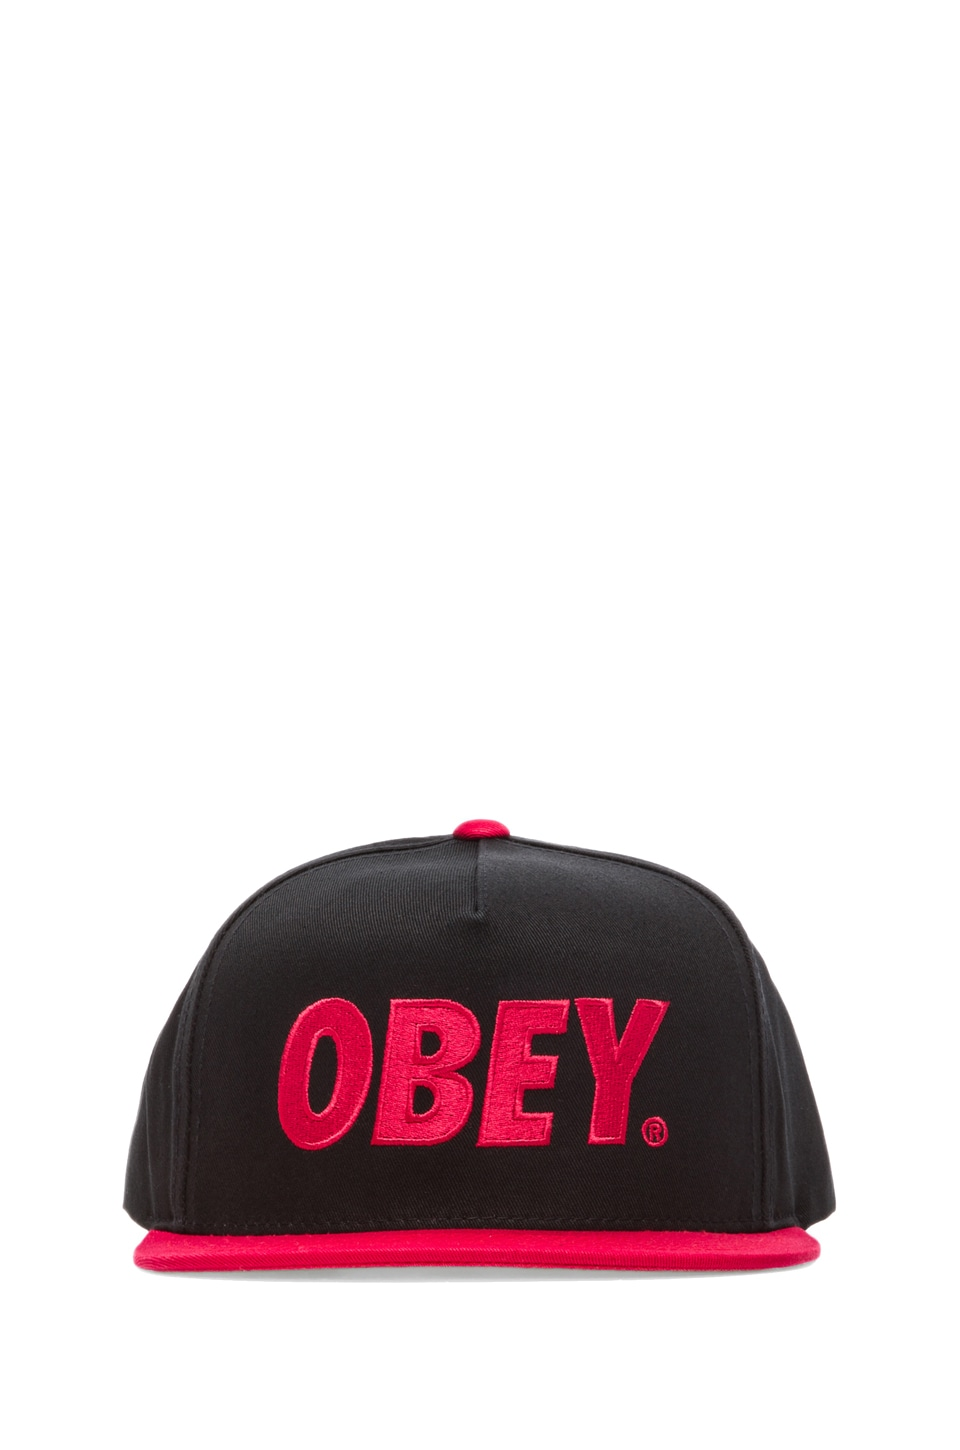 Obey The City Snapback in Black/Red